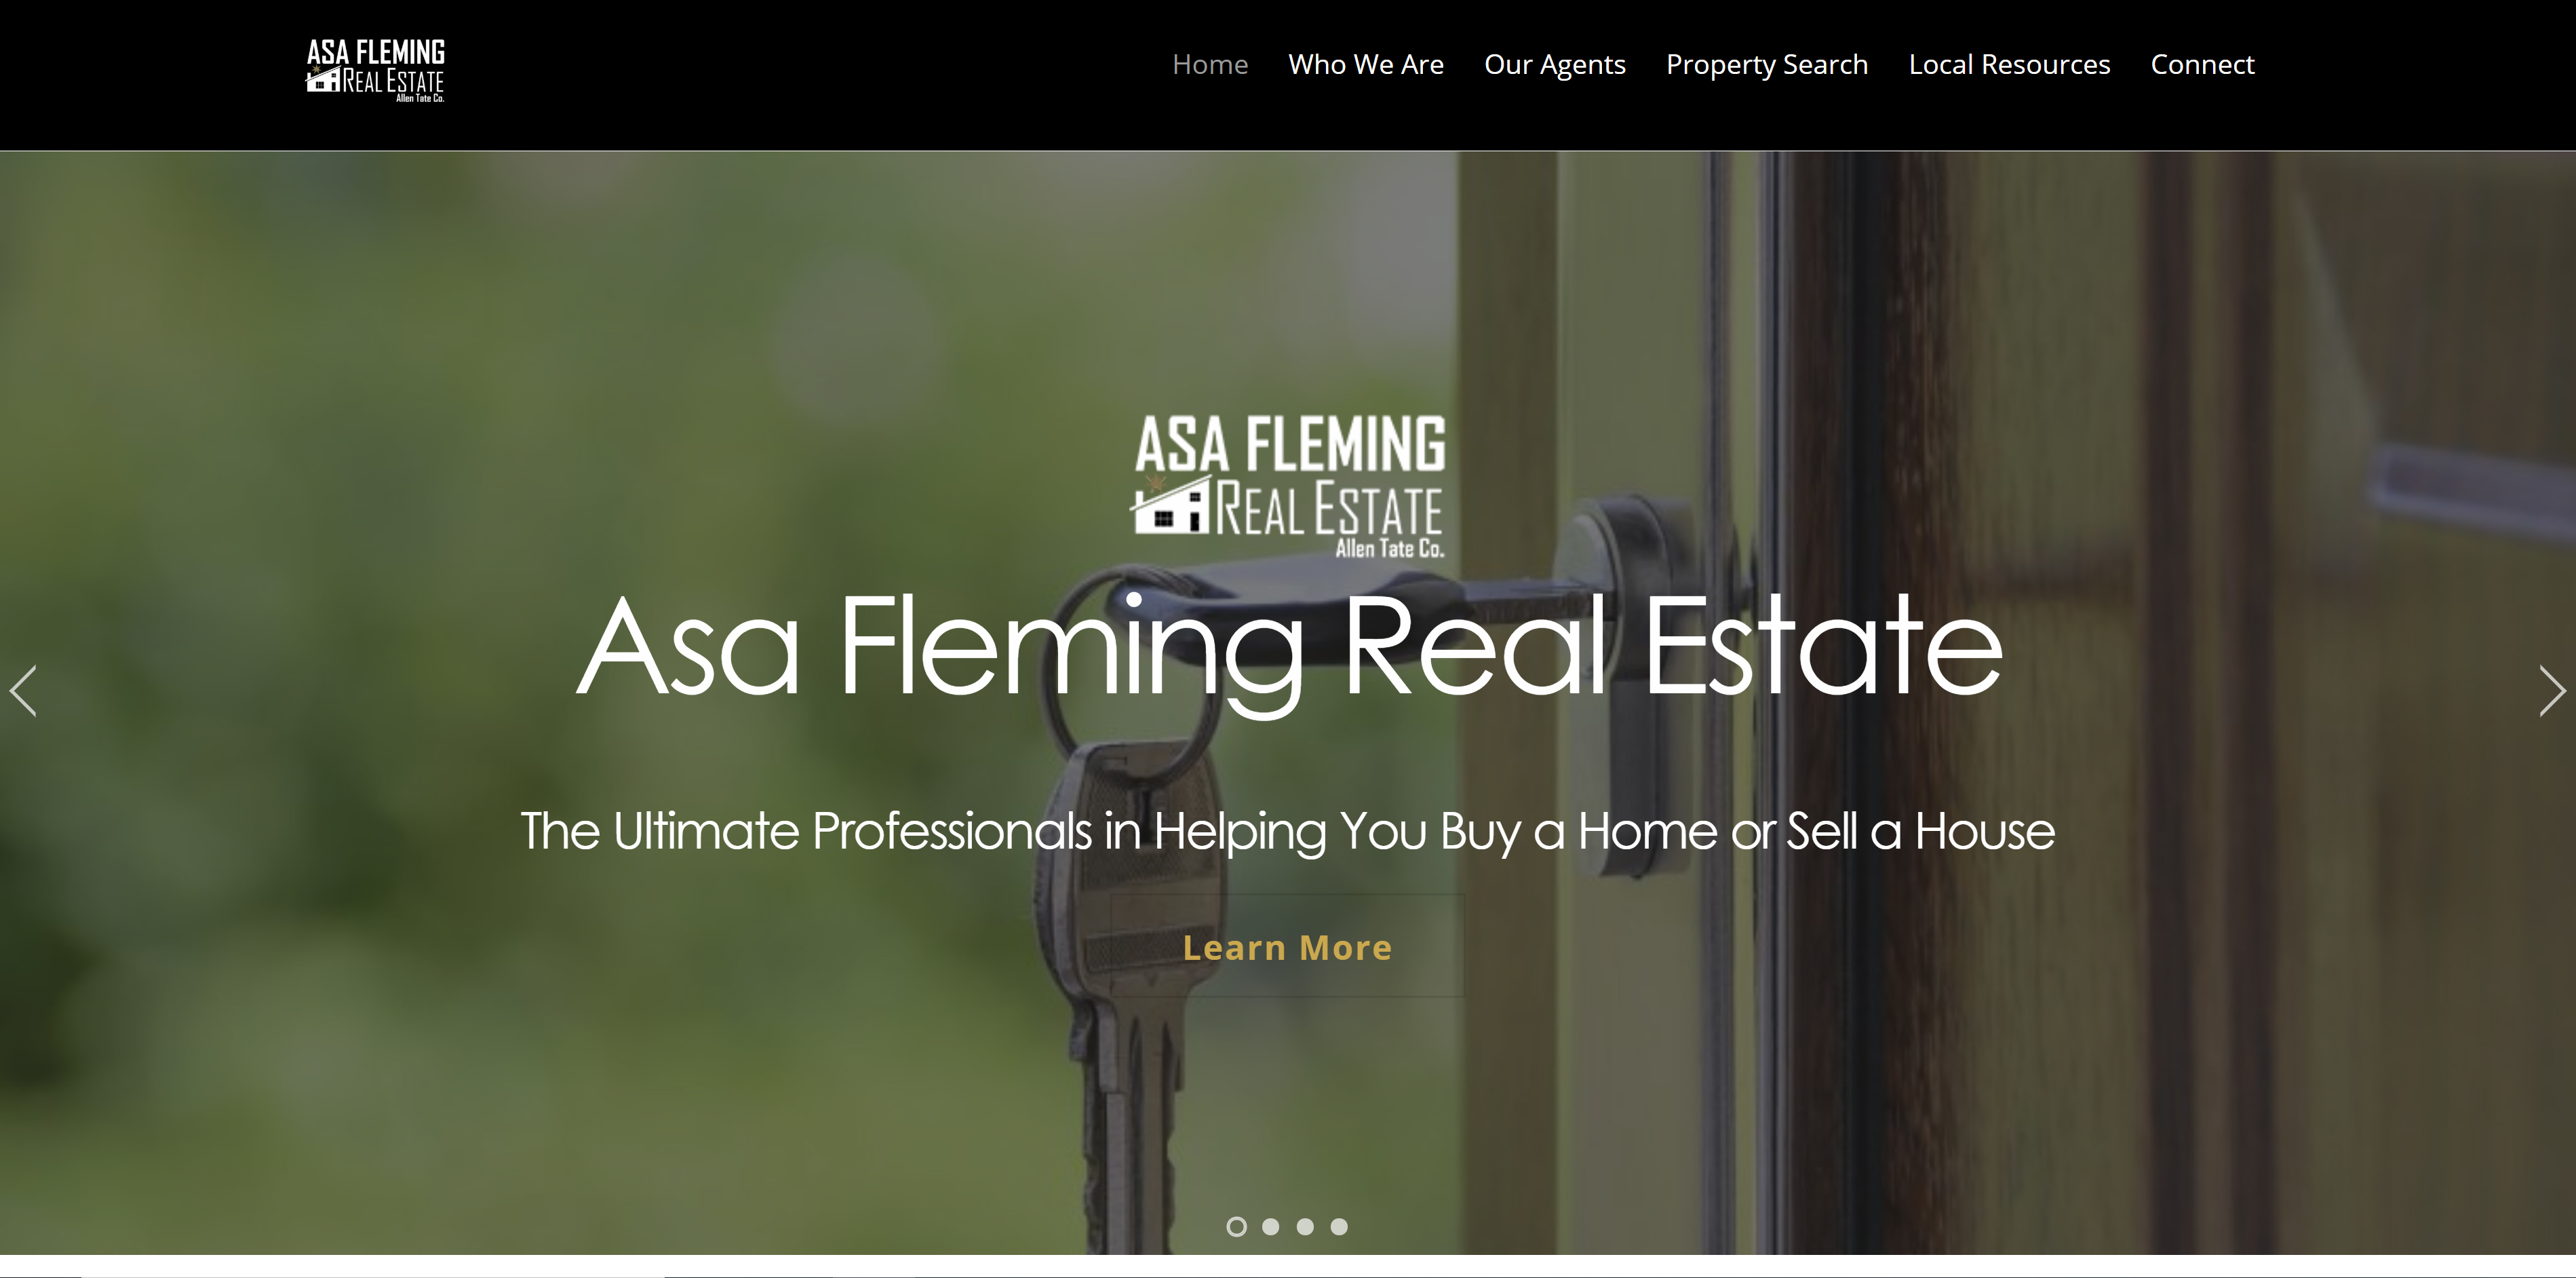 Asa Fleming Real Estate